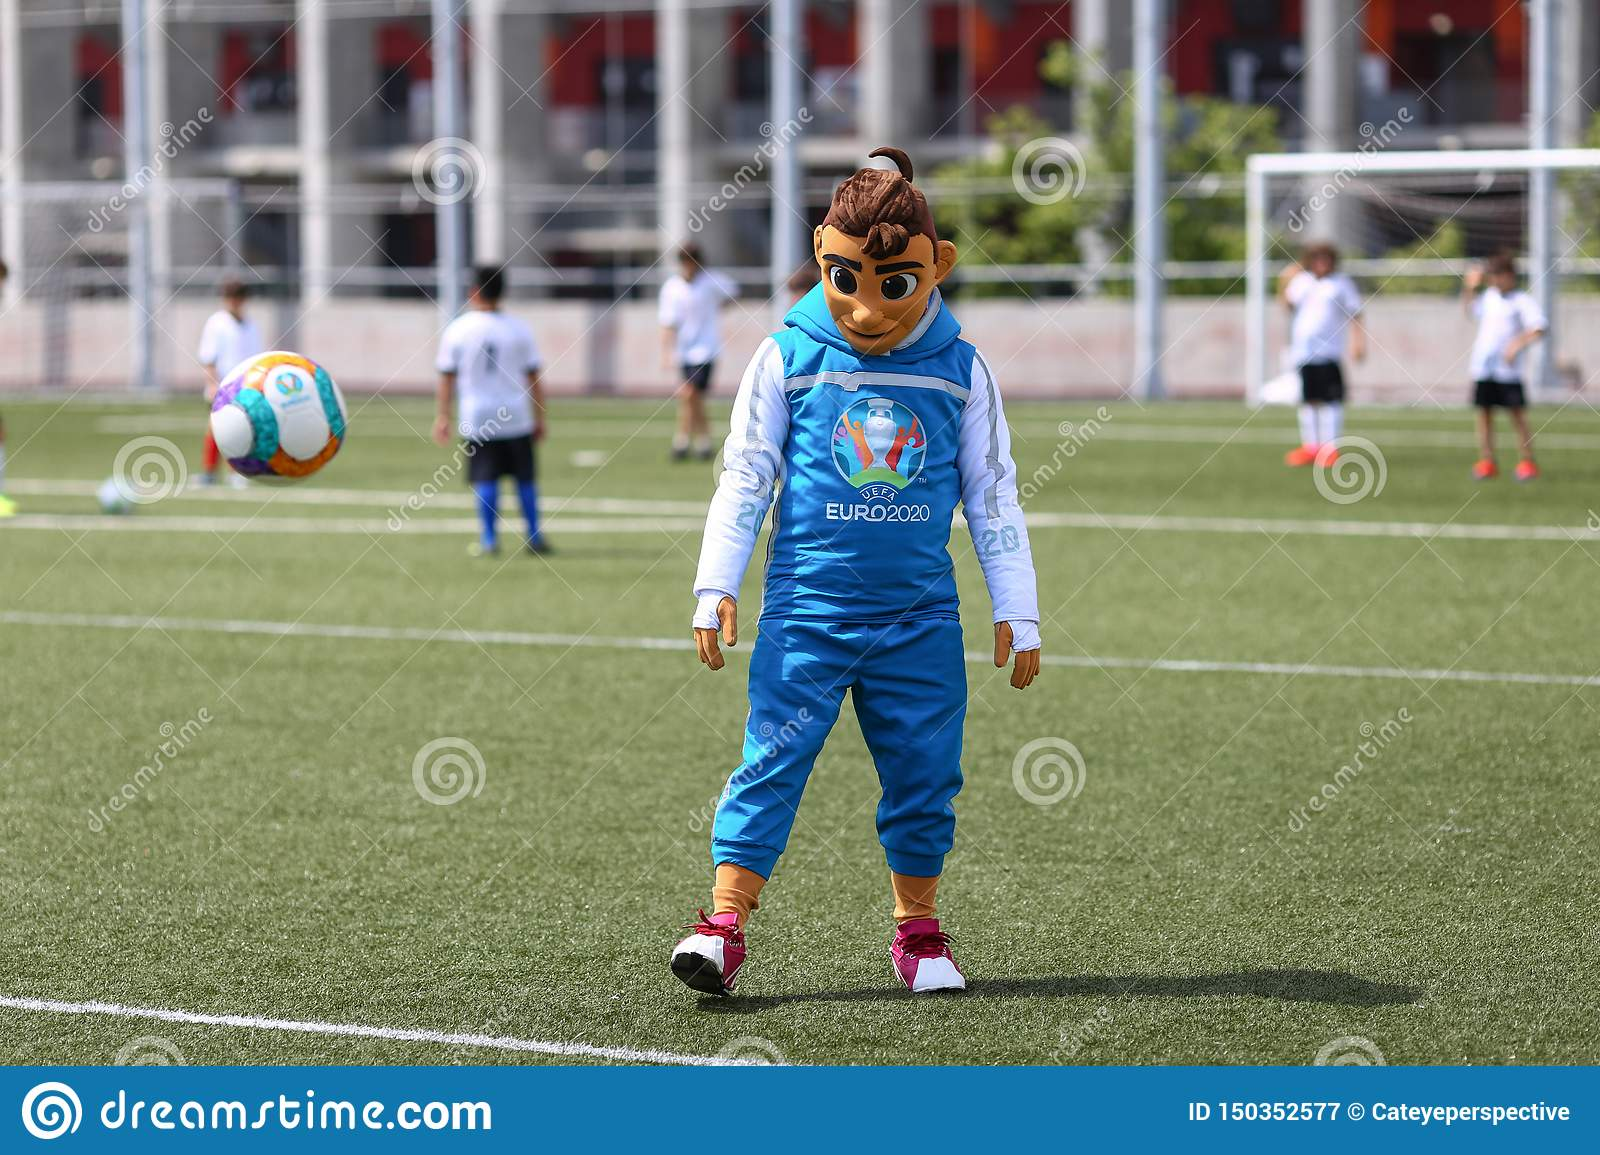 Skillzy, the official mascot for the Euro 2020 football tournament, is seen during a presentation at the National Arena Stadium